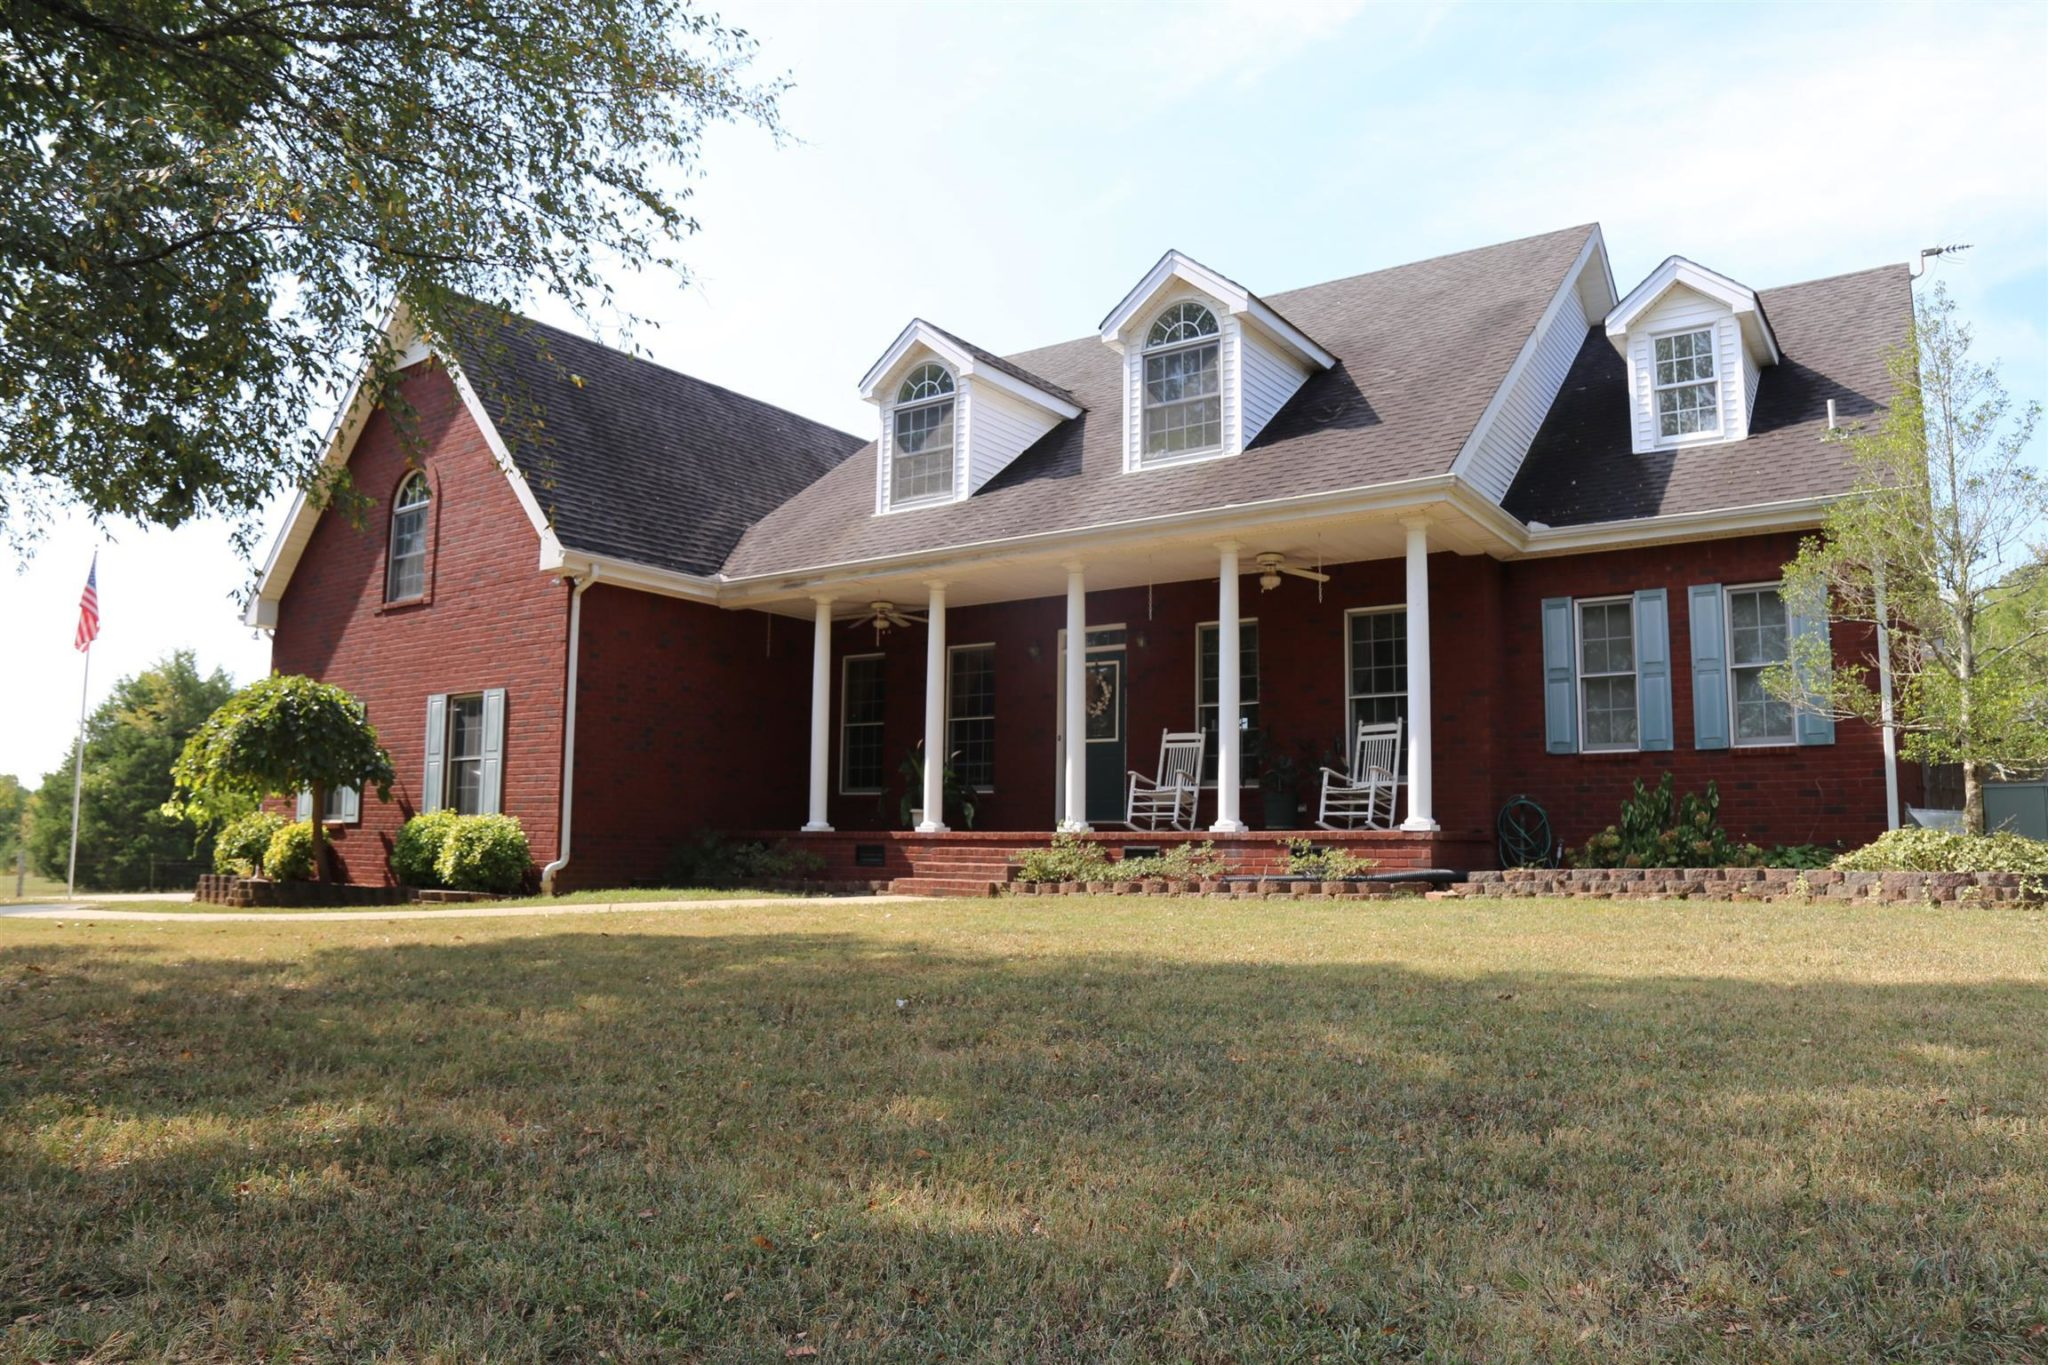 Home Listings On Almaville Rd In Rutherford County Tn